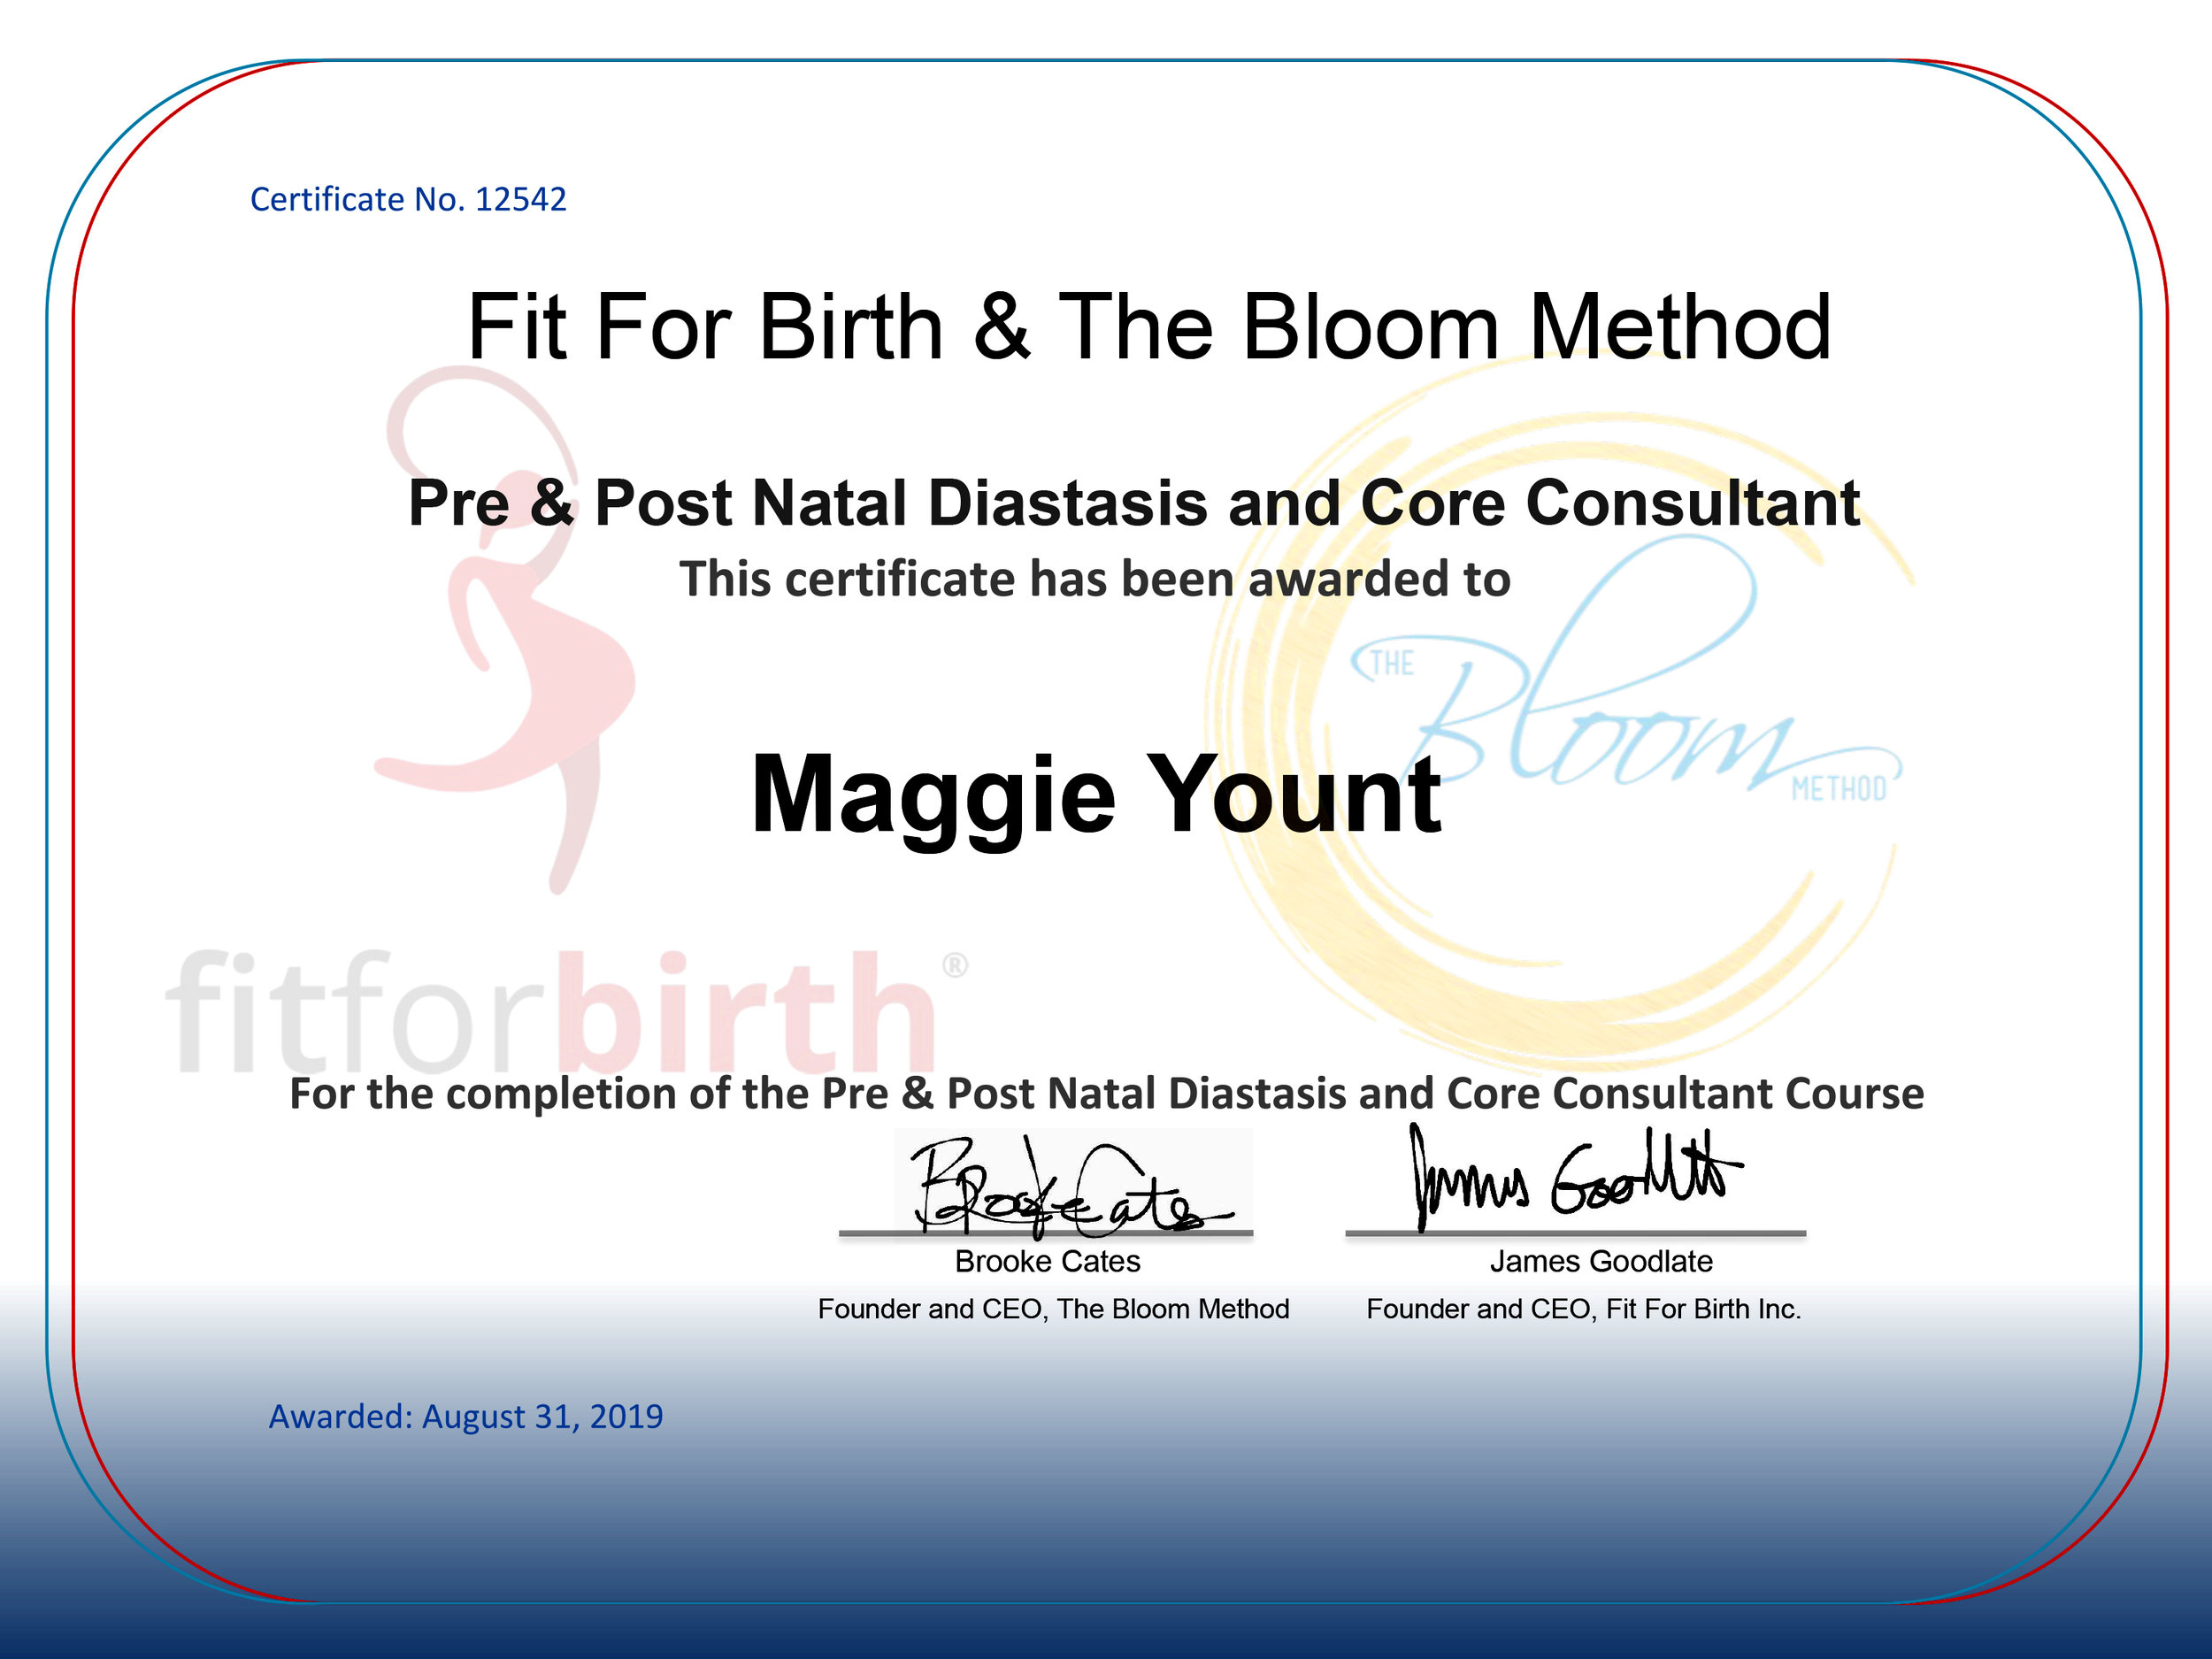 PPDCCMaggie Yount83119.jpg